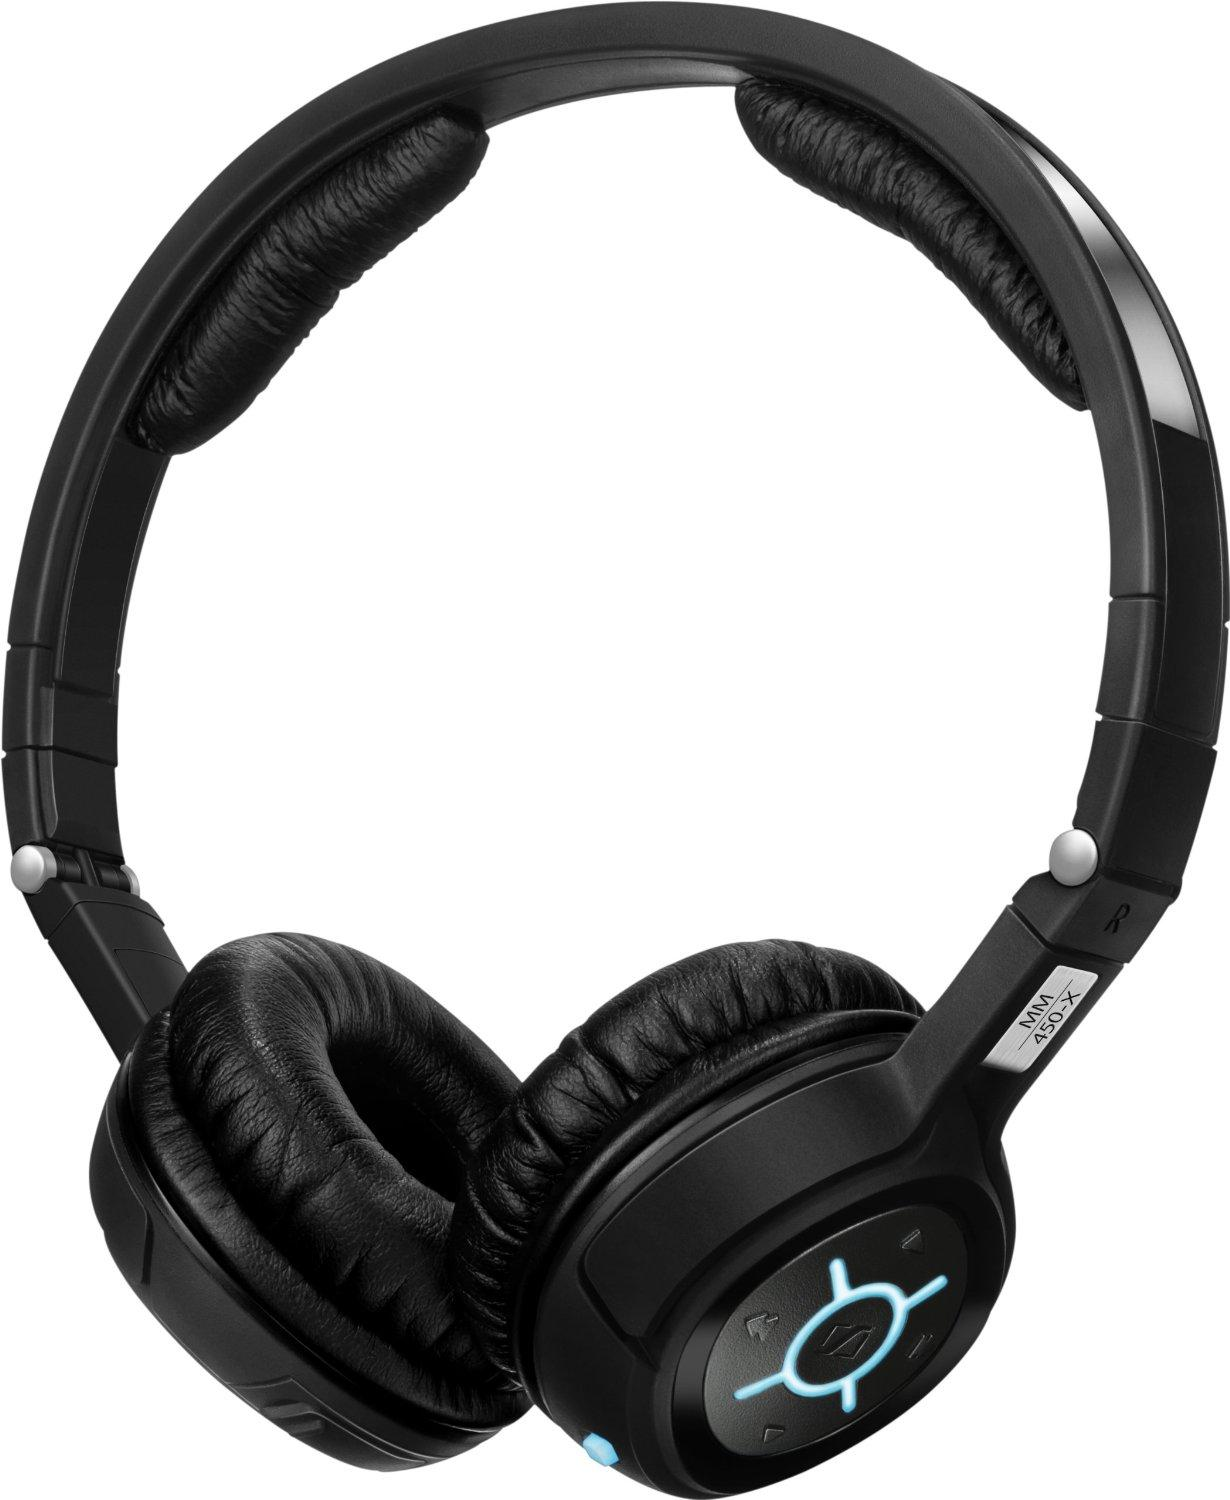 Sennheiser MM 450-X Wireless Bluetooth Headphones - Black